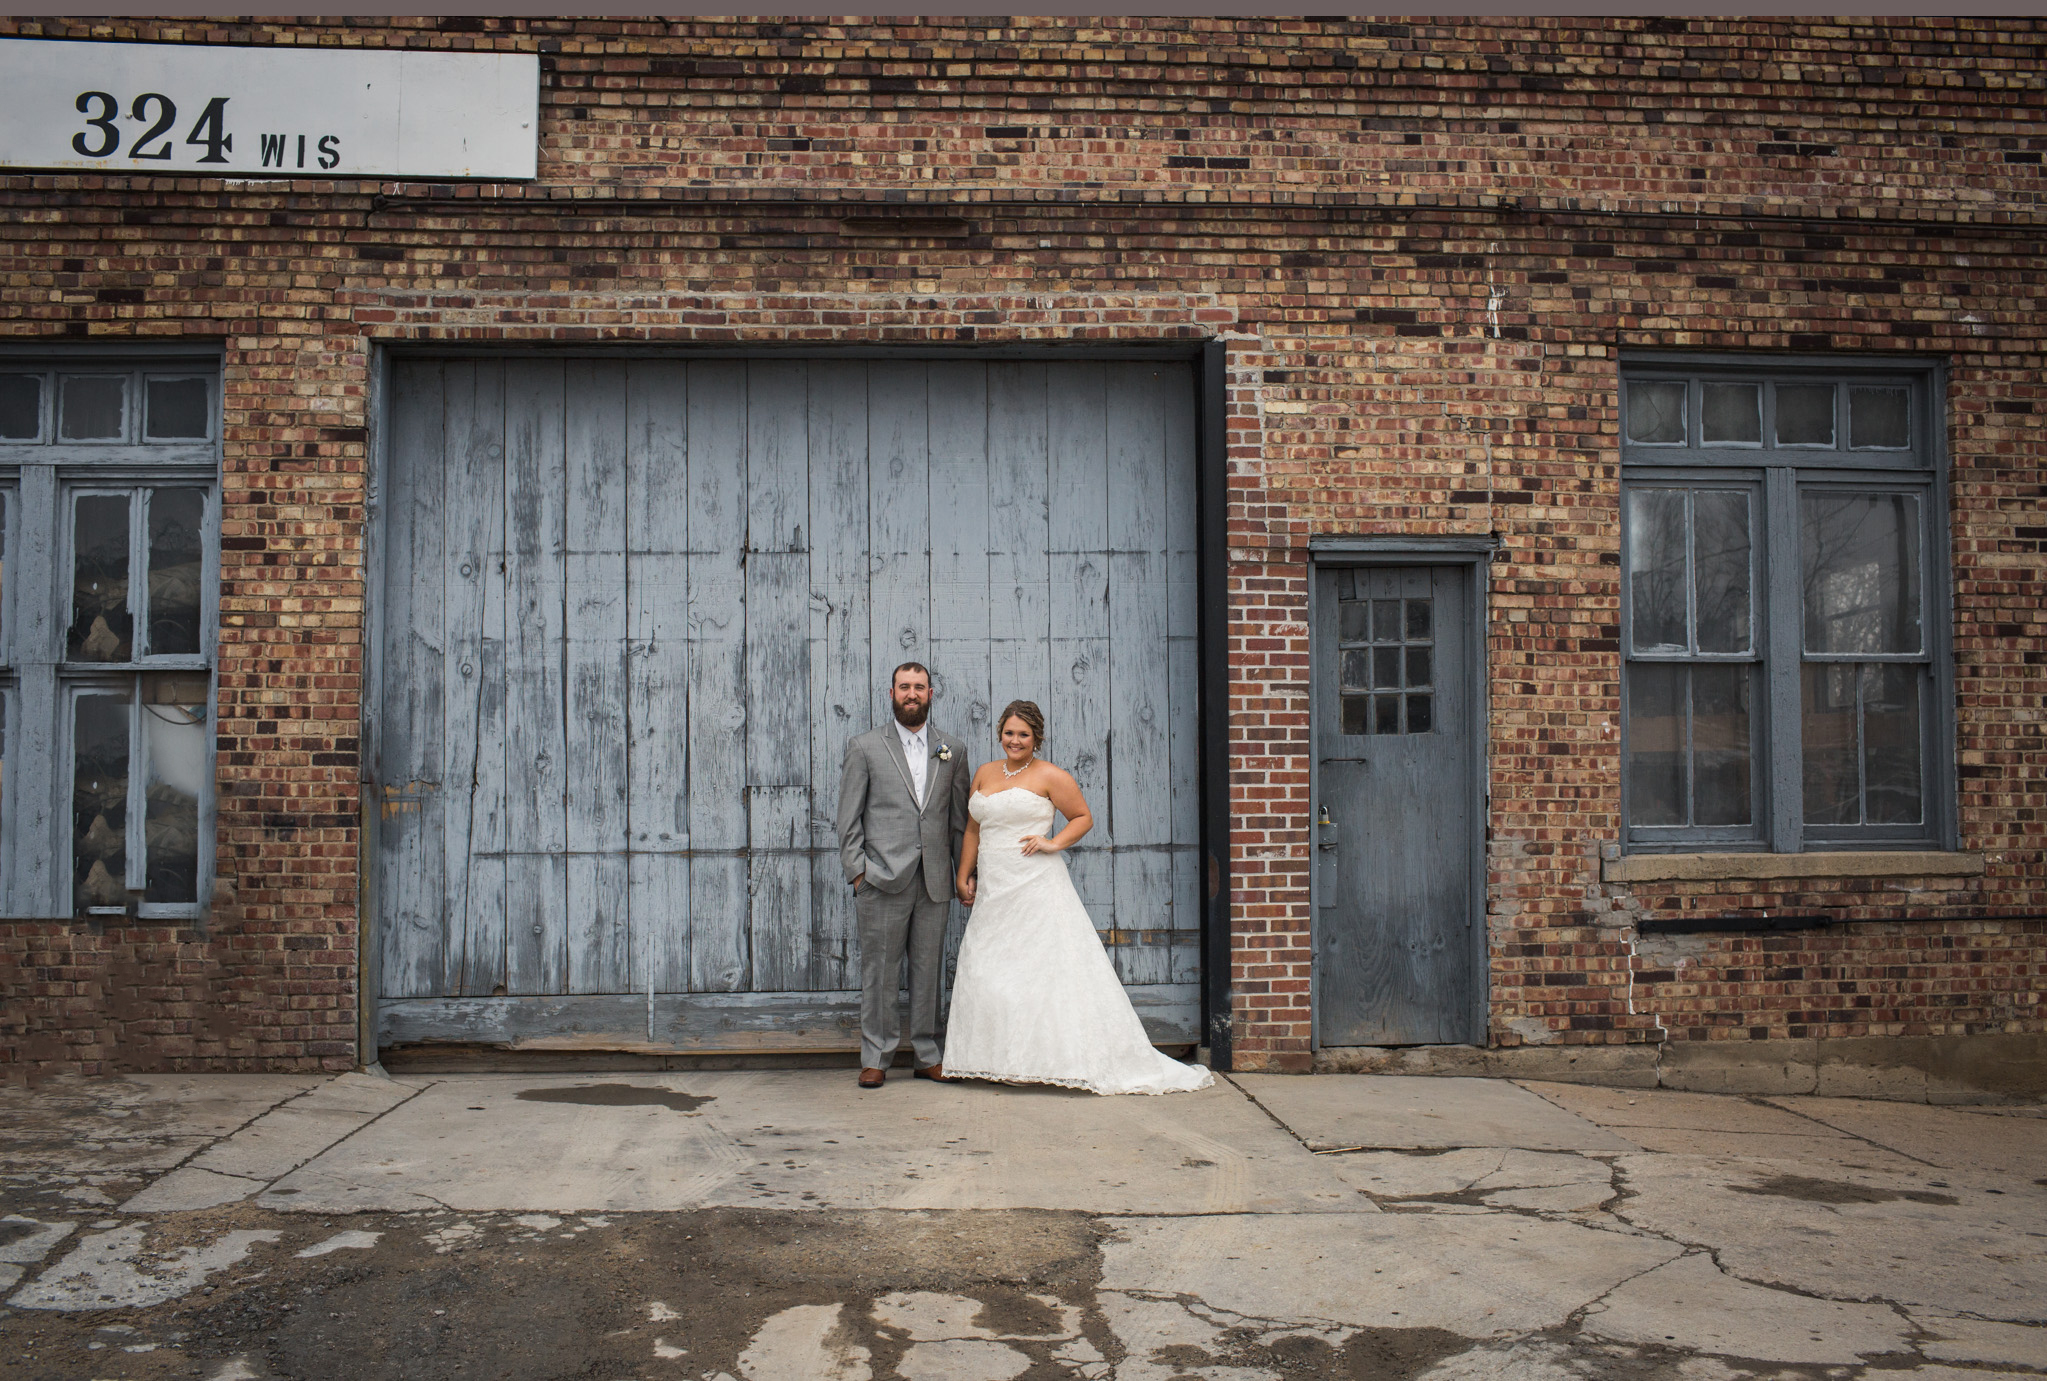 Zibell Spring Wedding, Bride and Groom, Powerful, Connected, Exploration, Laura Duggleby Photography -87.JPG